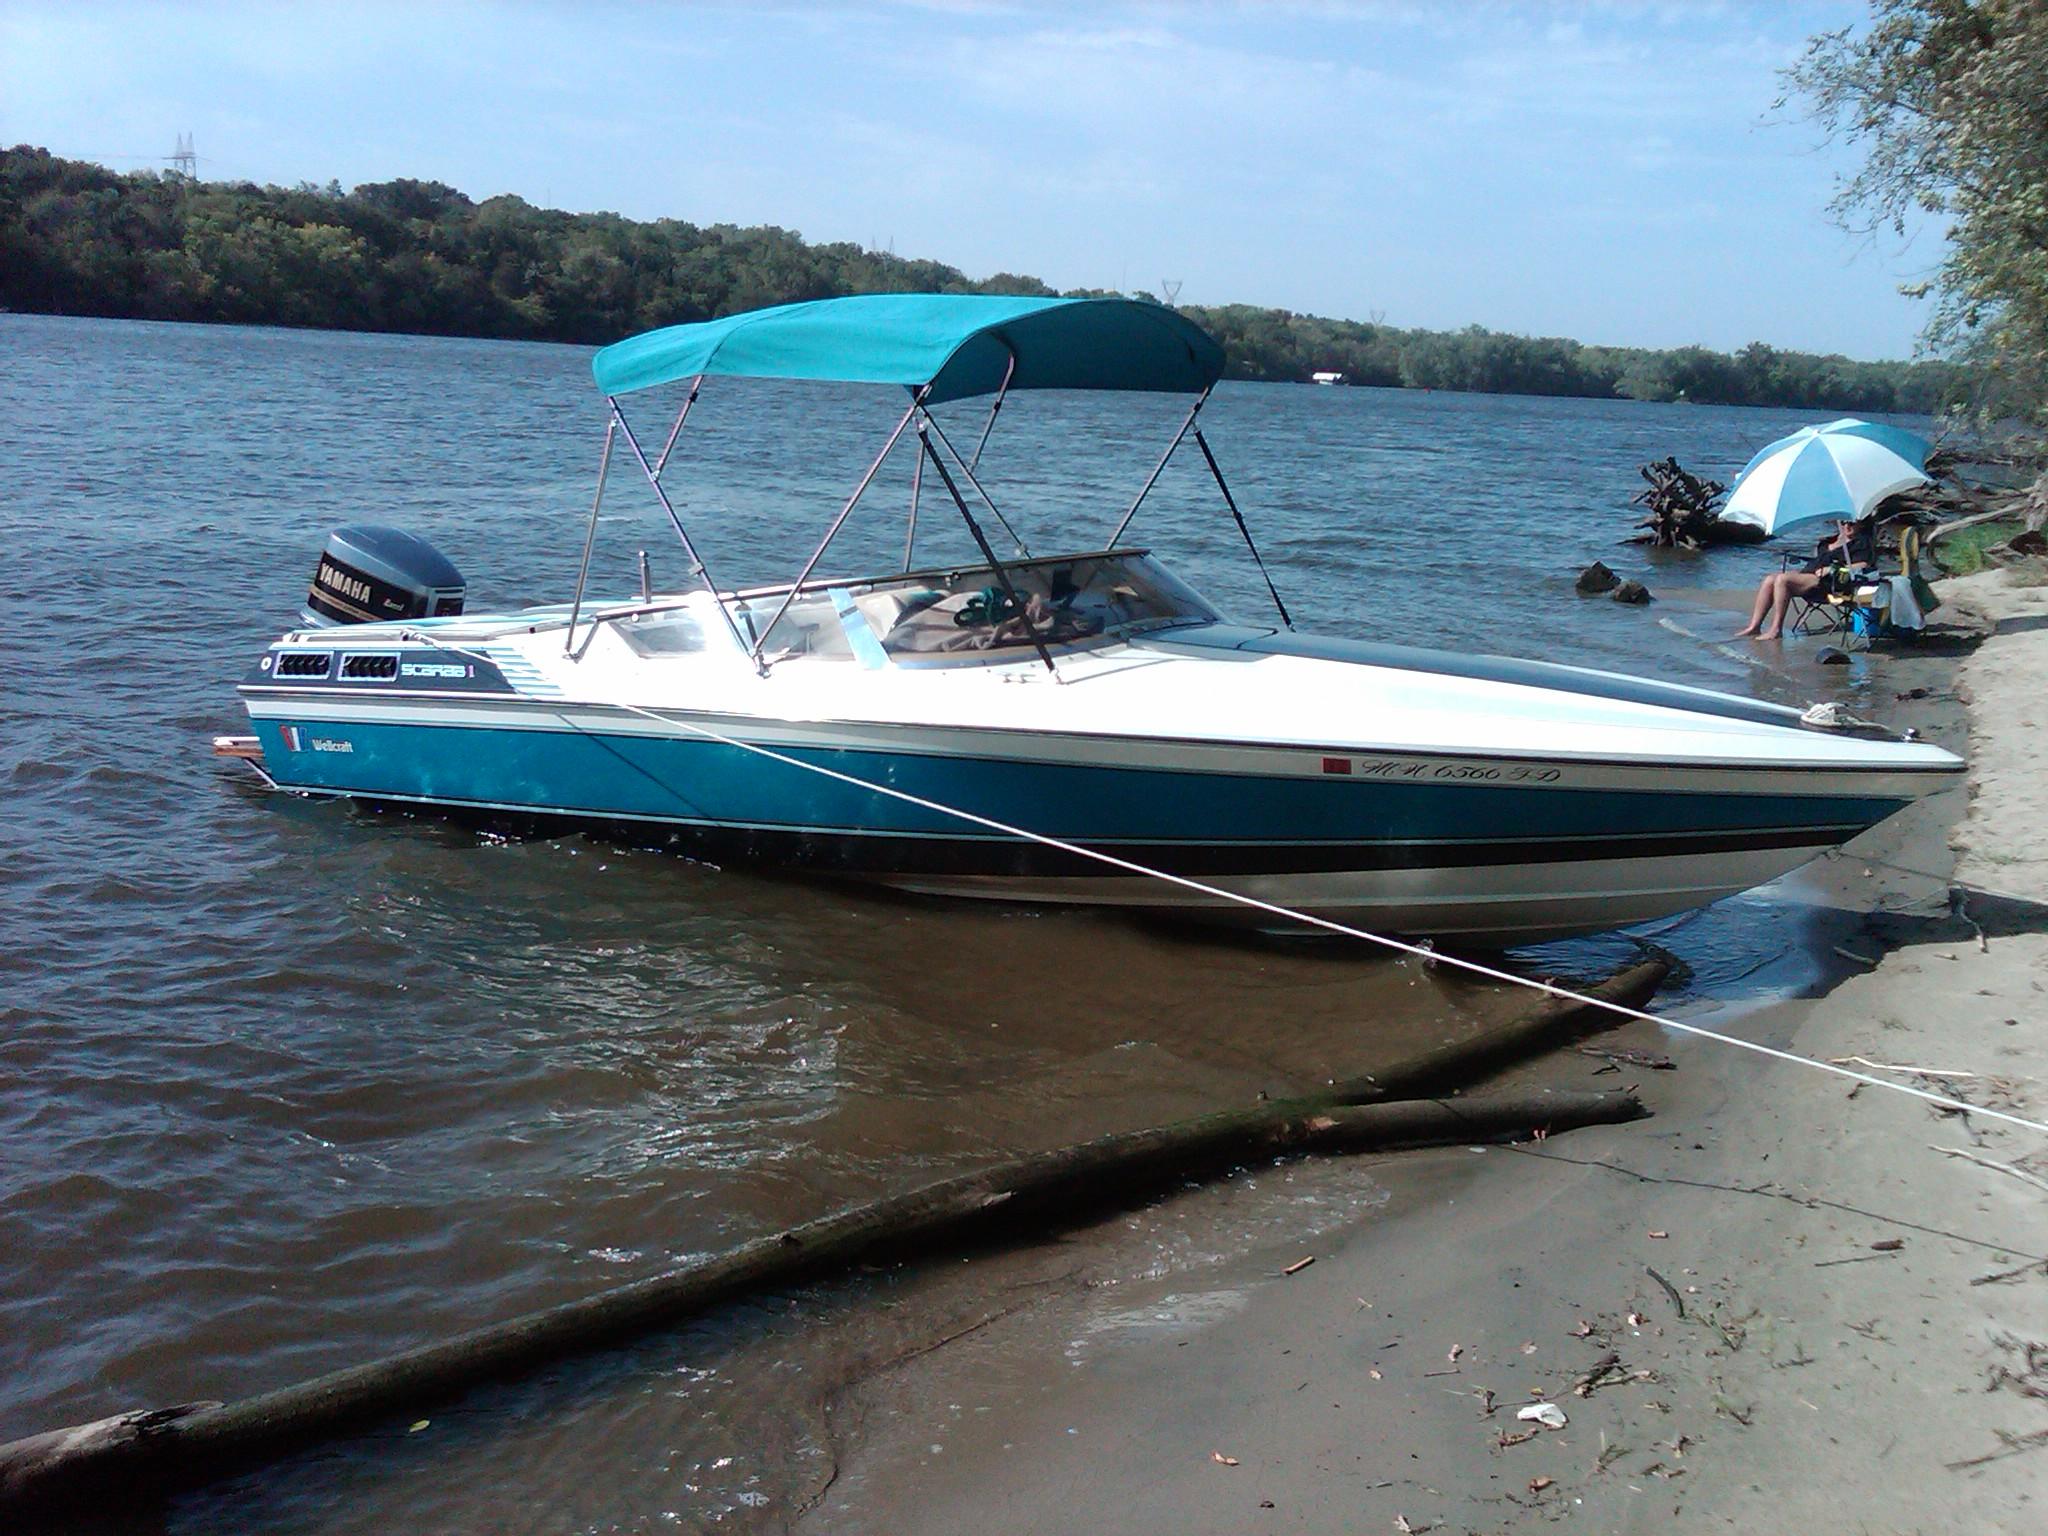 6ft Bimini Top with Stainless Steel Frame